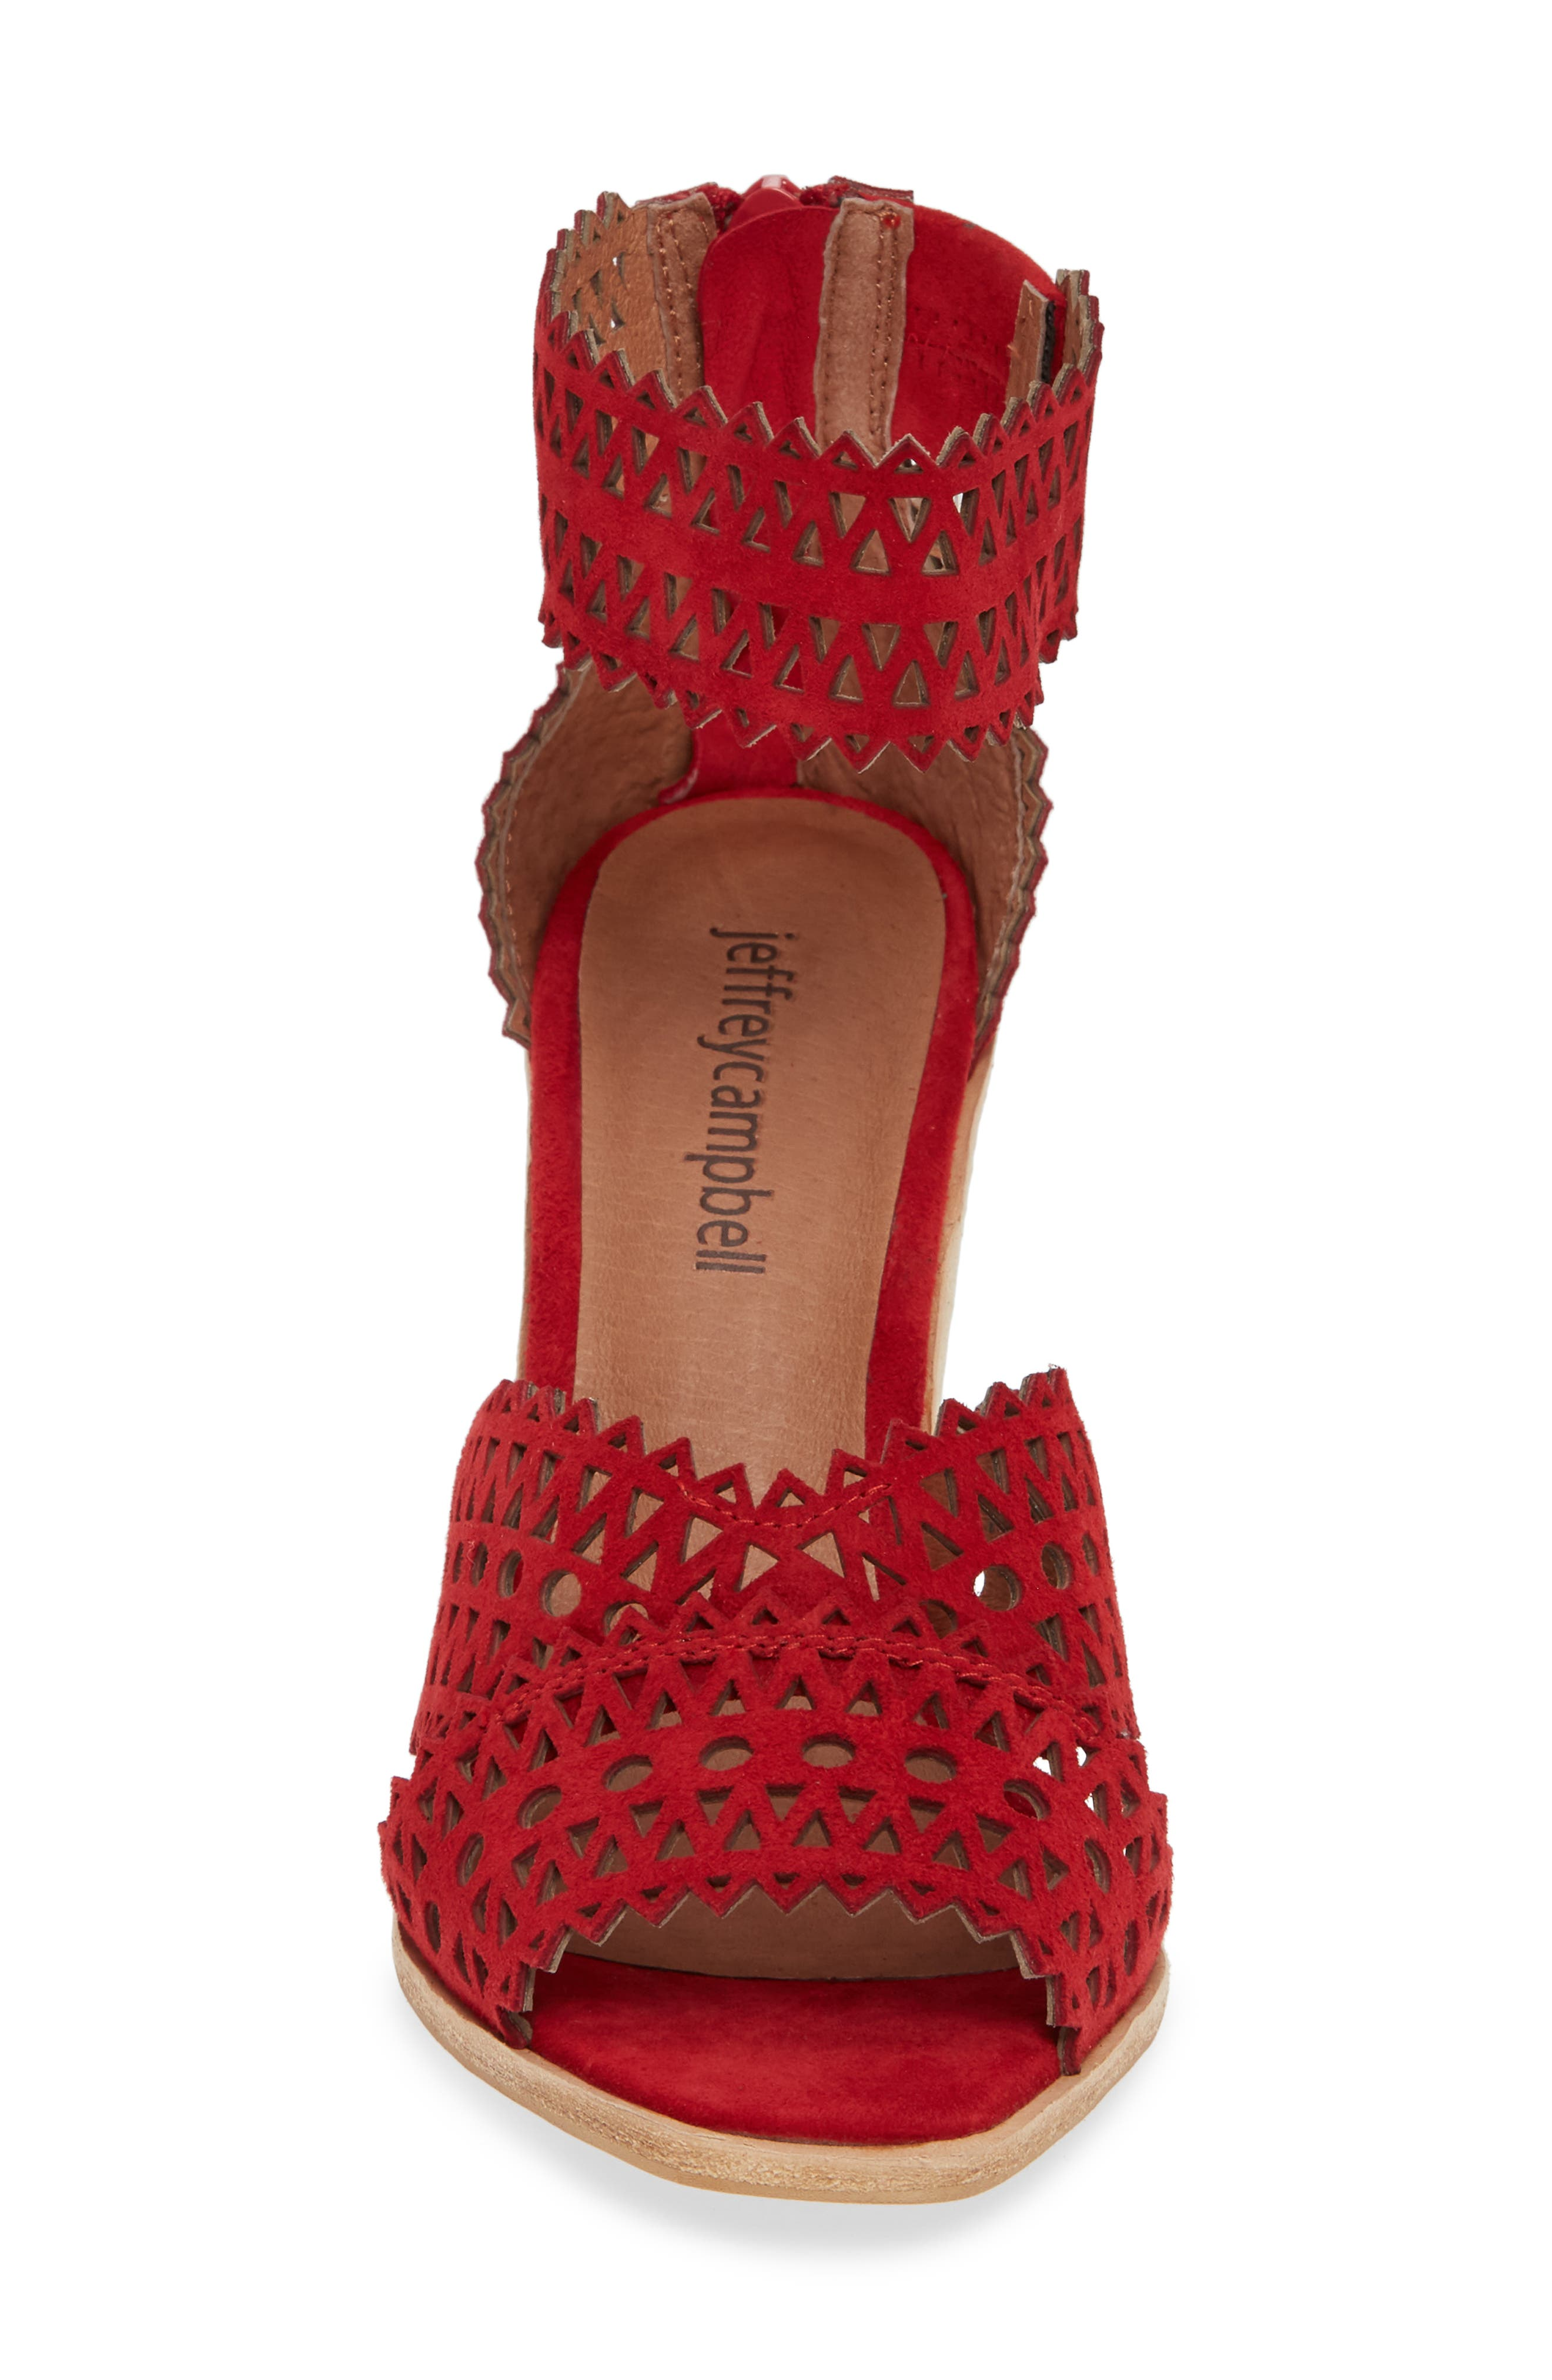 Besante Perforated Wedge Sandal,                             Alternate thumbnail 4, color,                             600